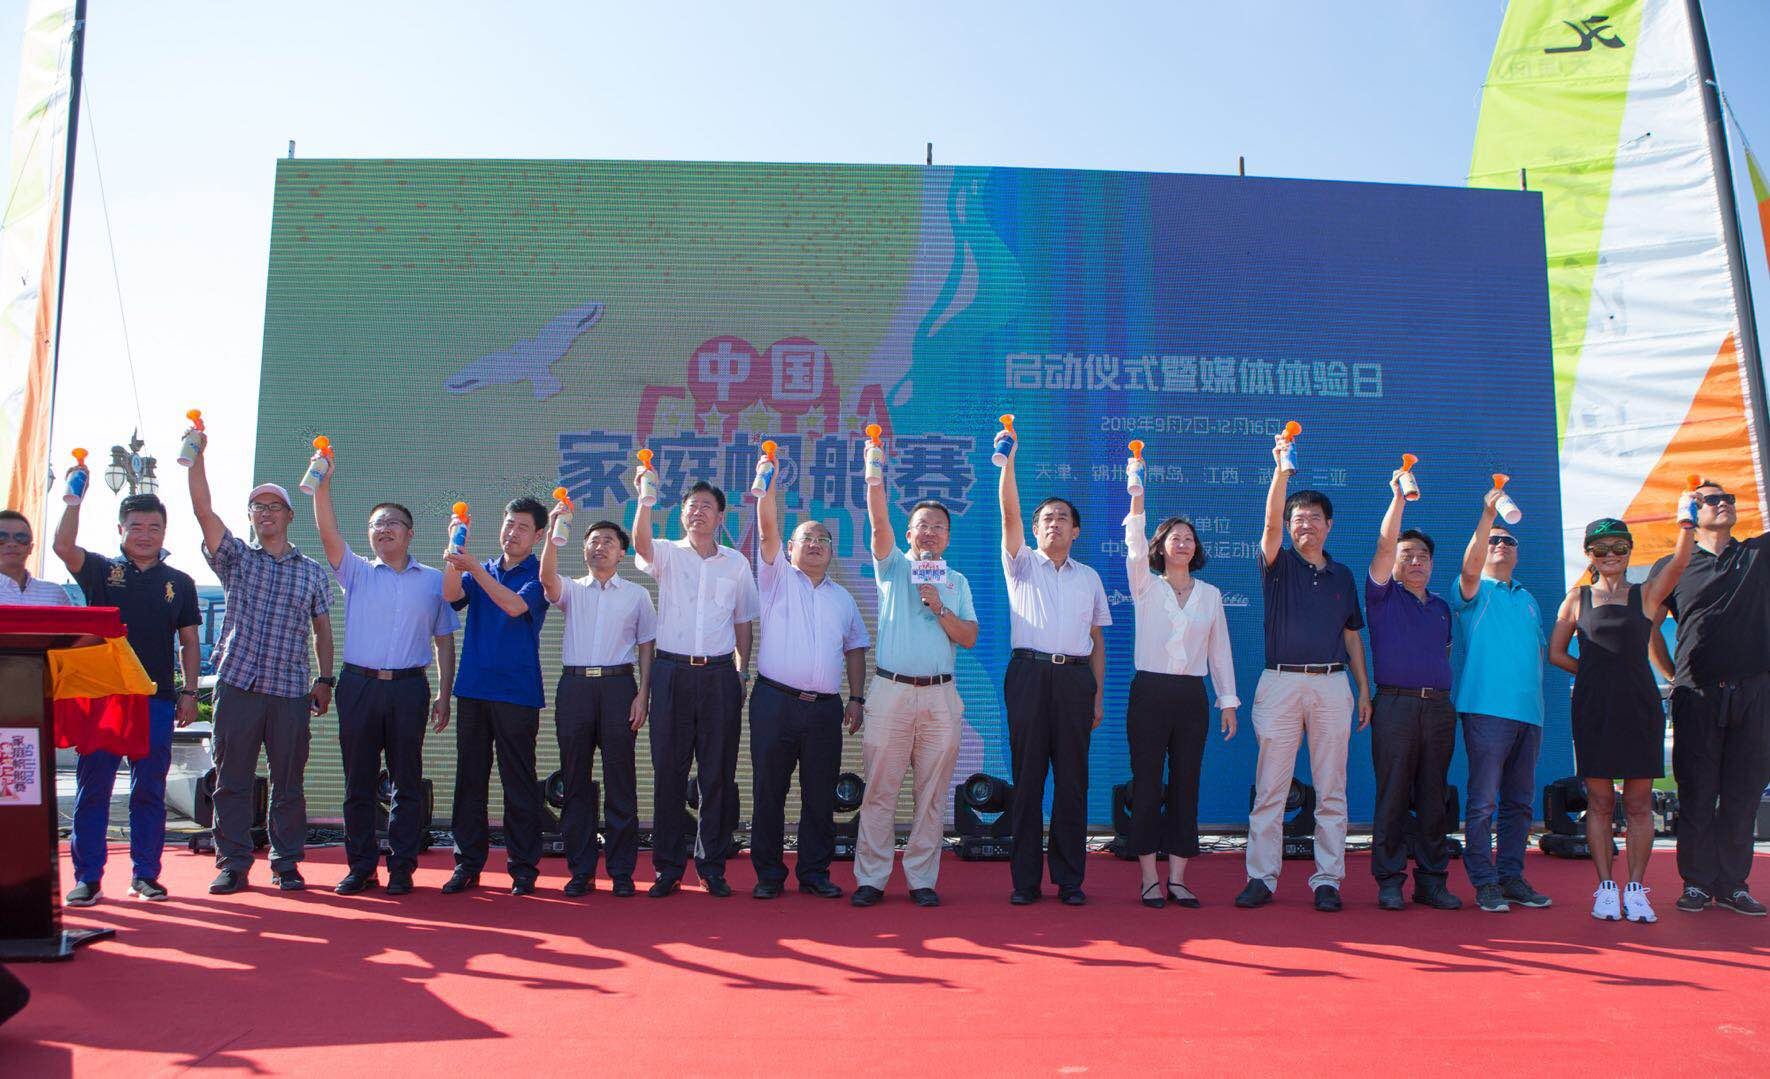 Family race aims to invigorate Chinese sailing